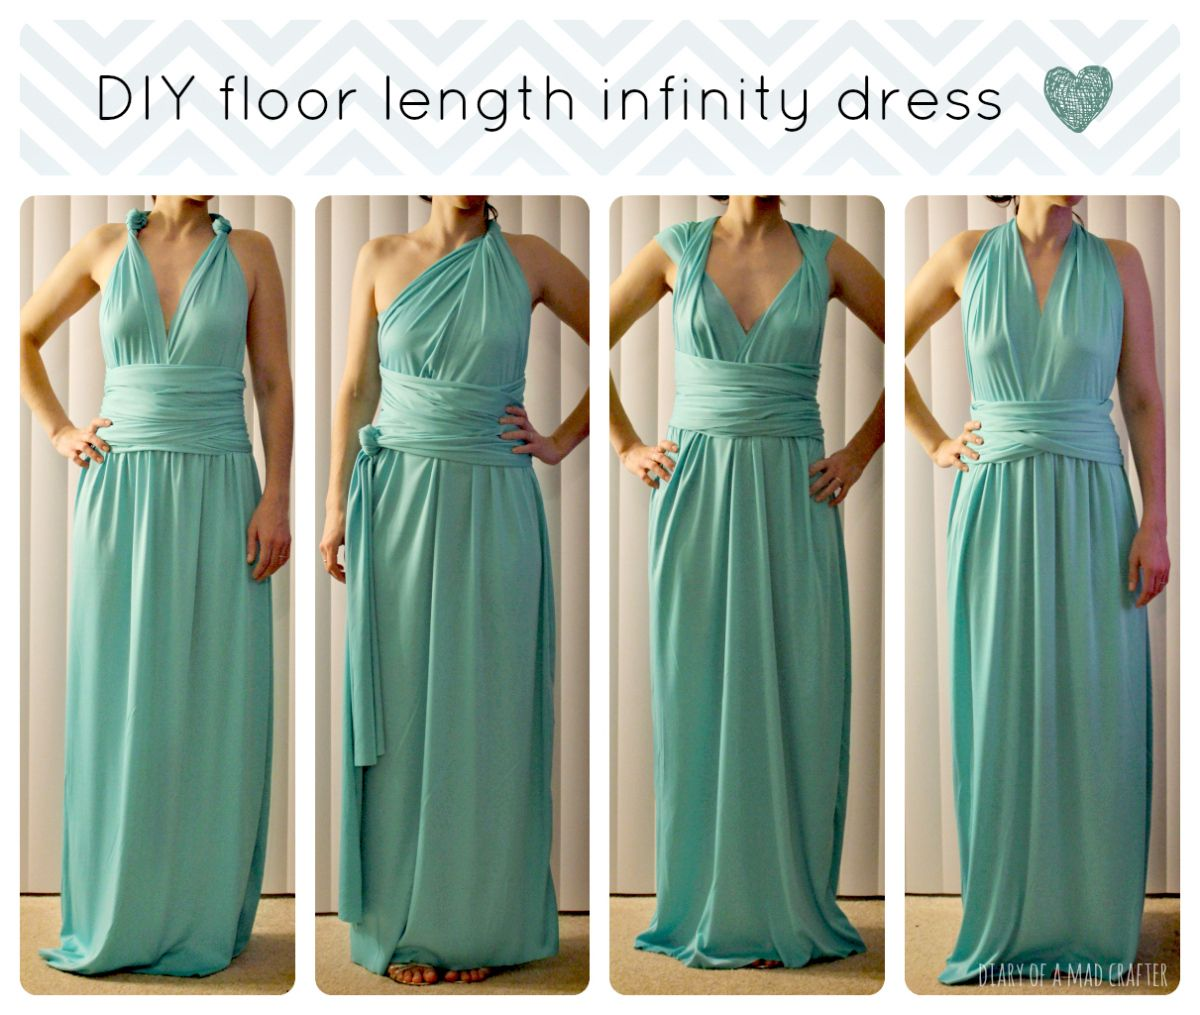 DIY Floor Length Infinity Dress | Infinity, Mad and Dress tutorials